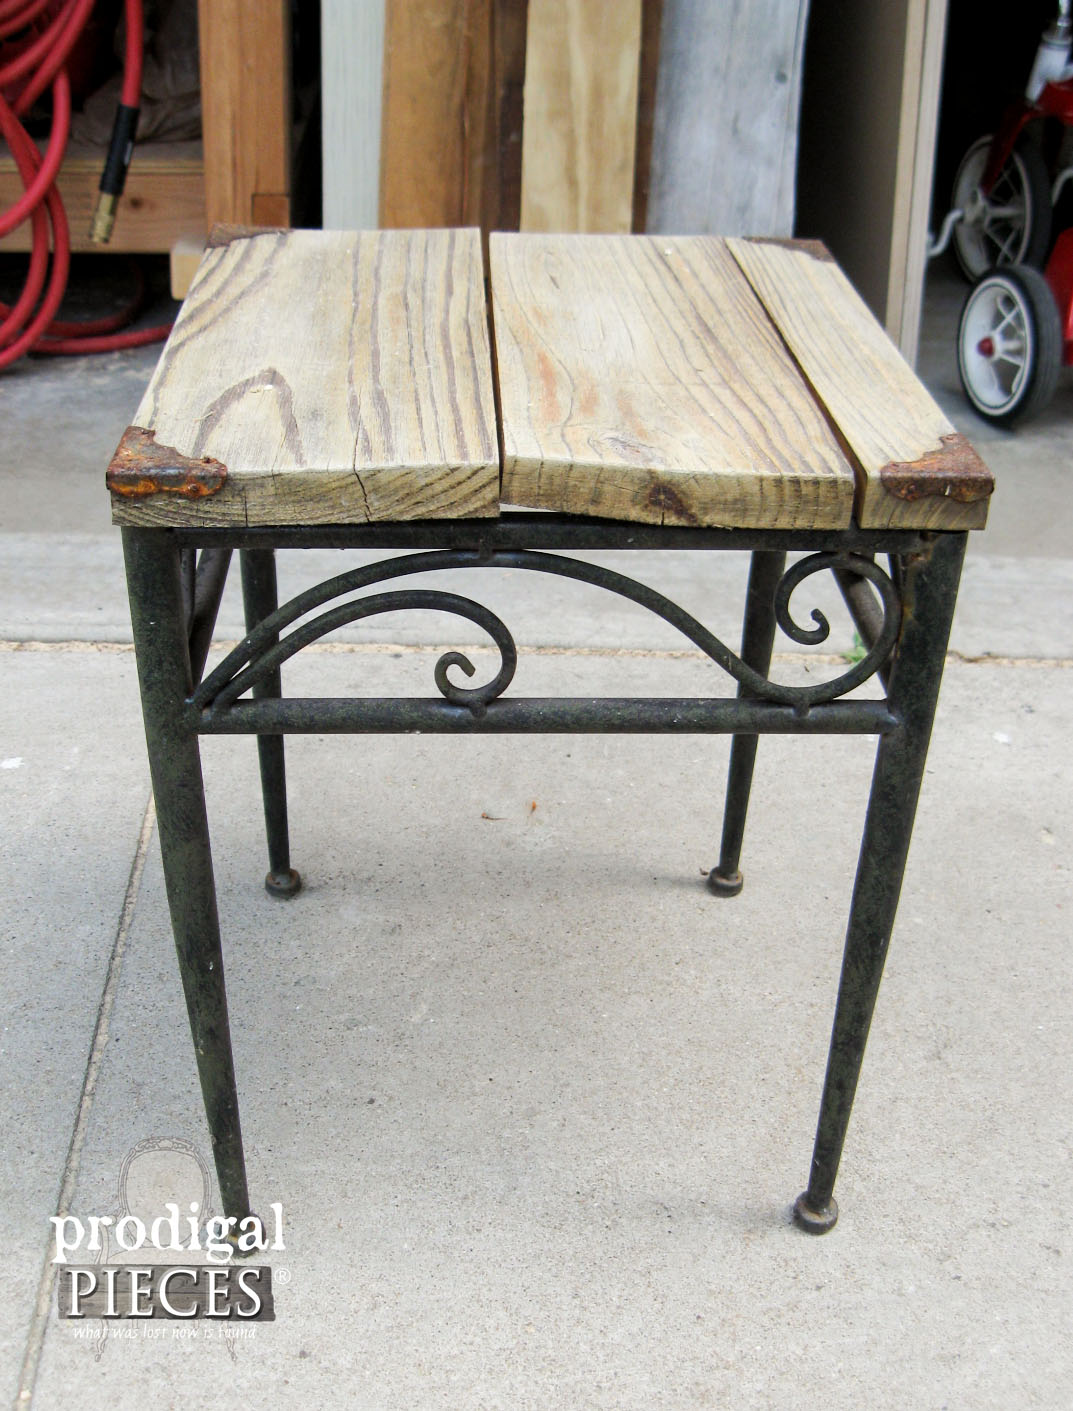 Marvelous Outdoor Table Before Patio Makeover Prodigal Pieces prodigalpieces